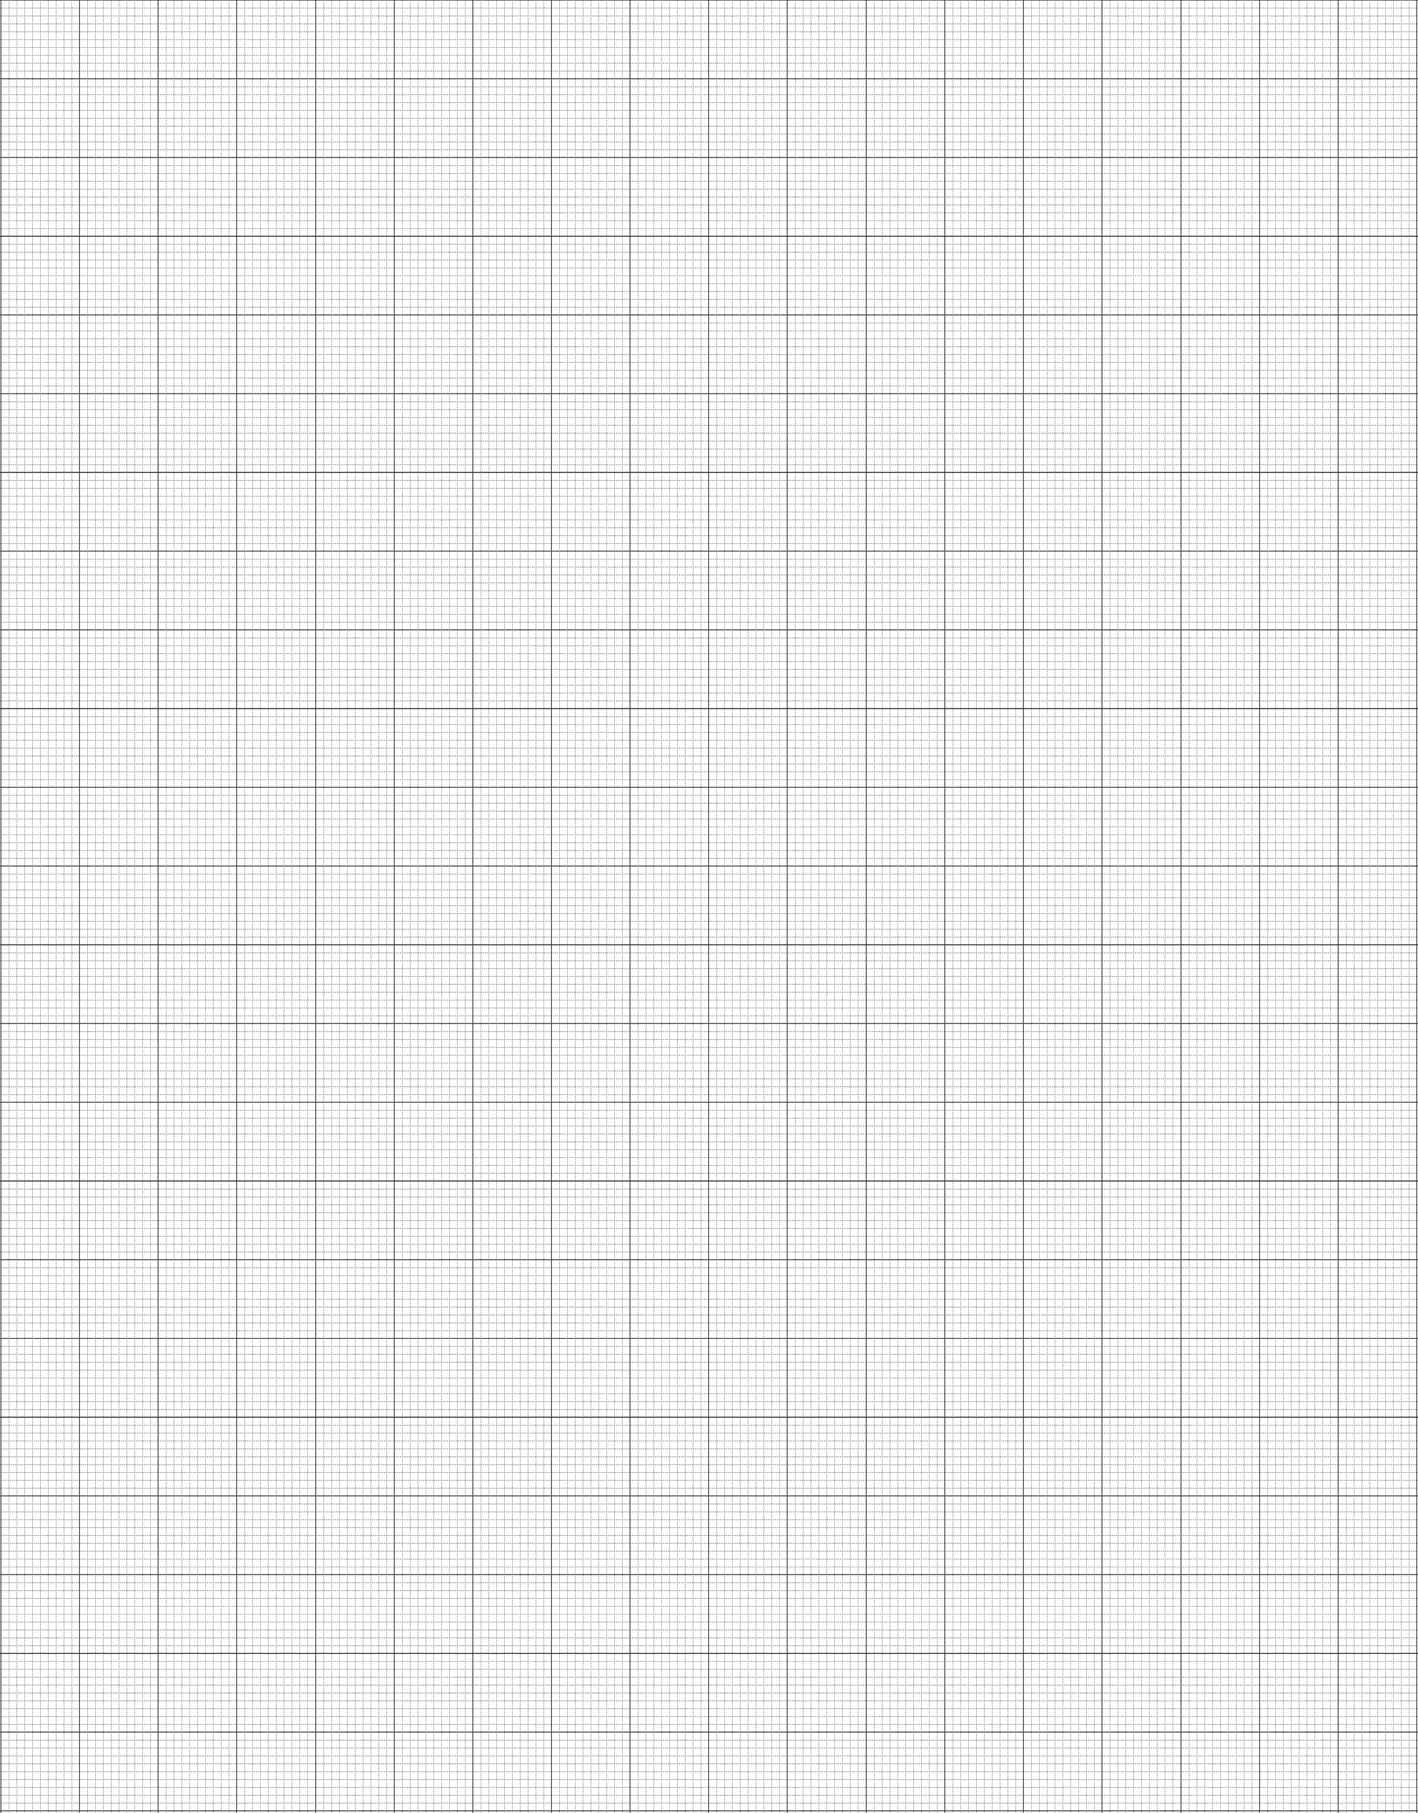 20 square per inch Graph Paper for Photographic Applications